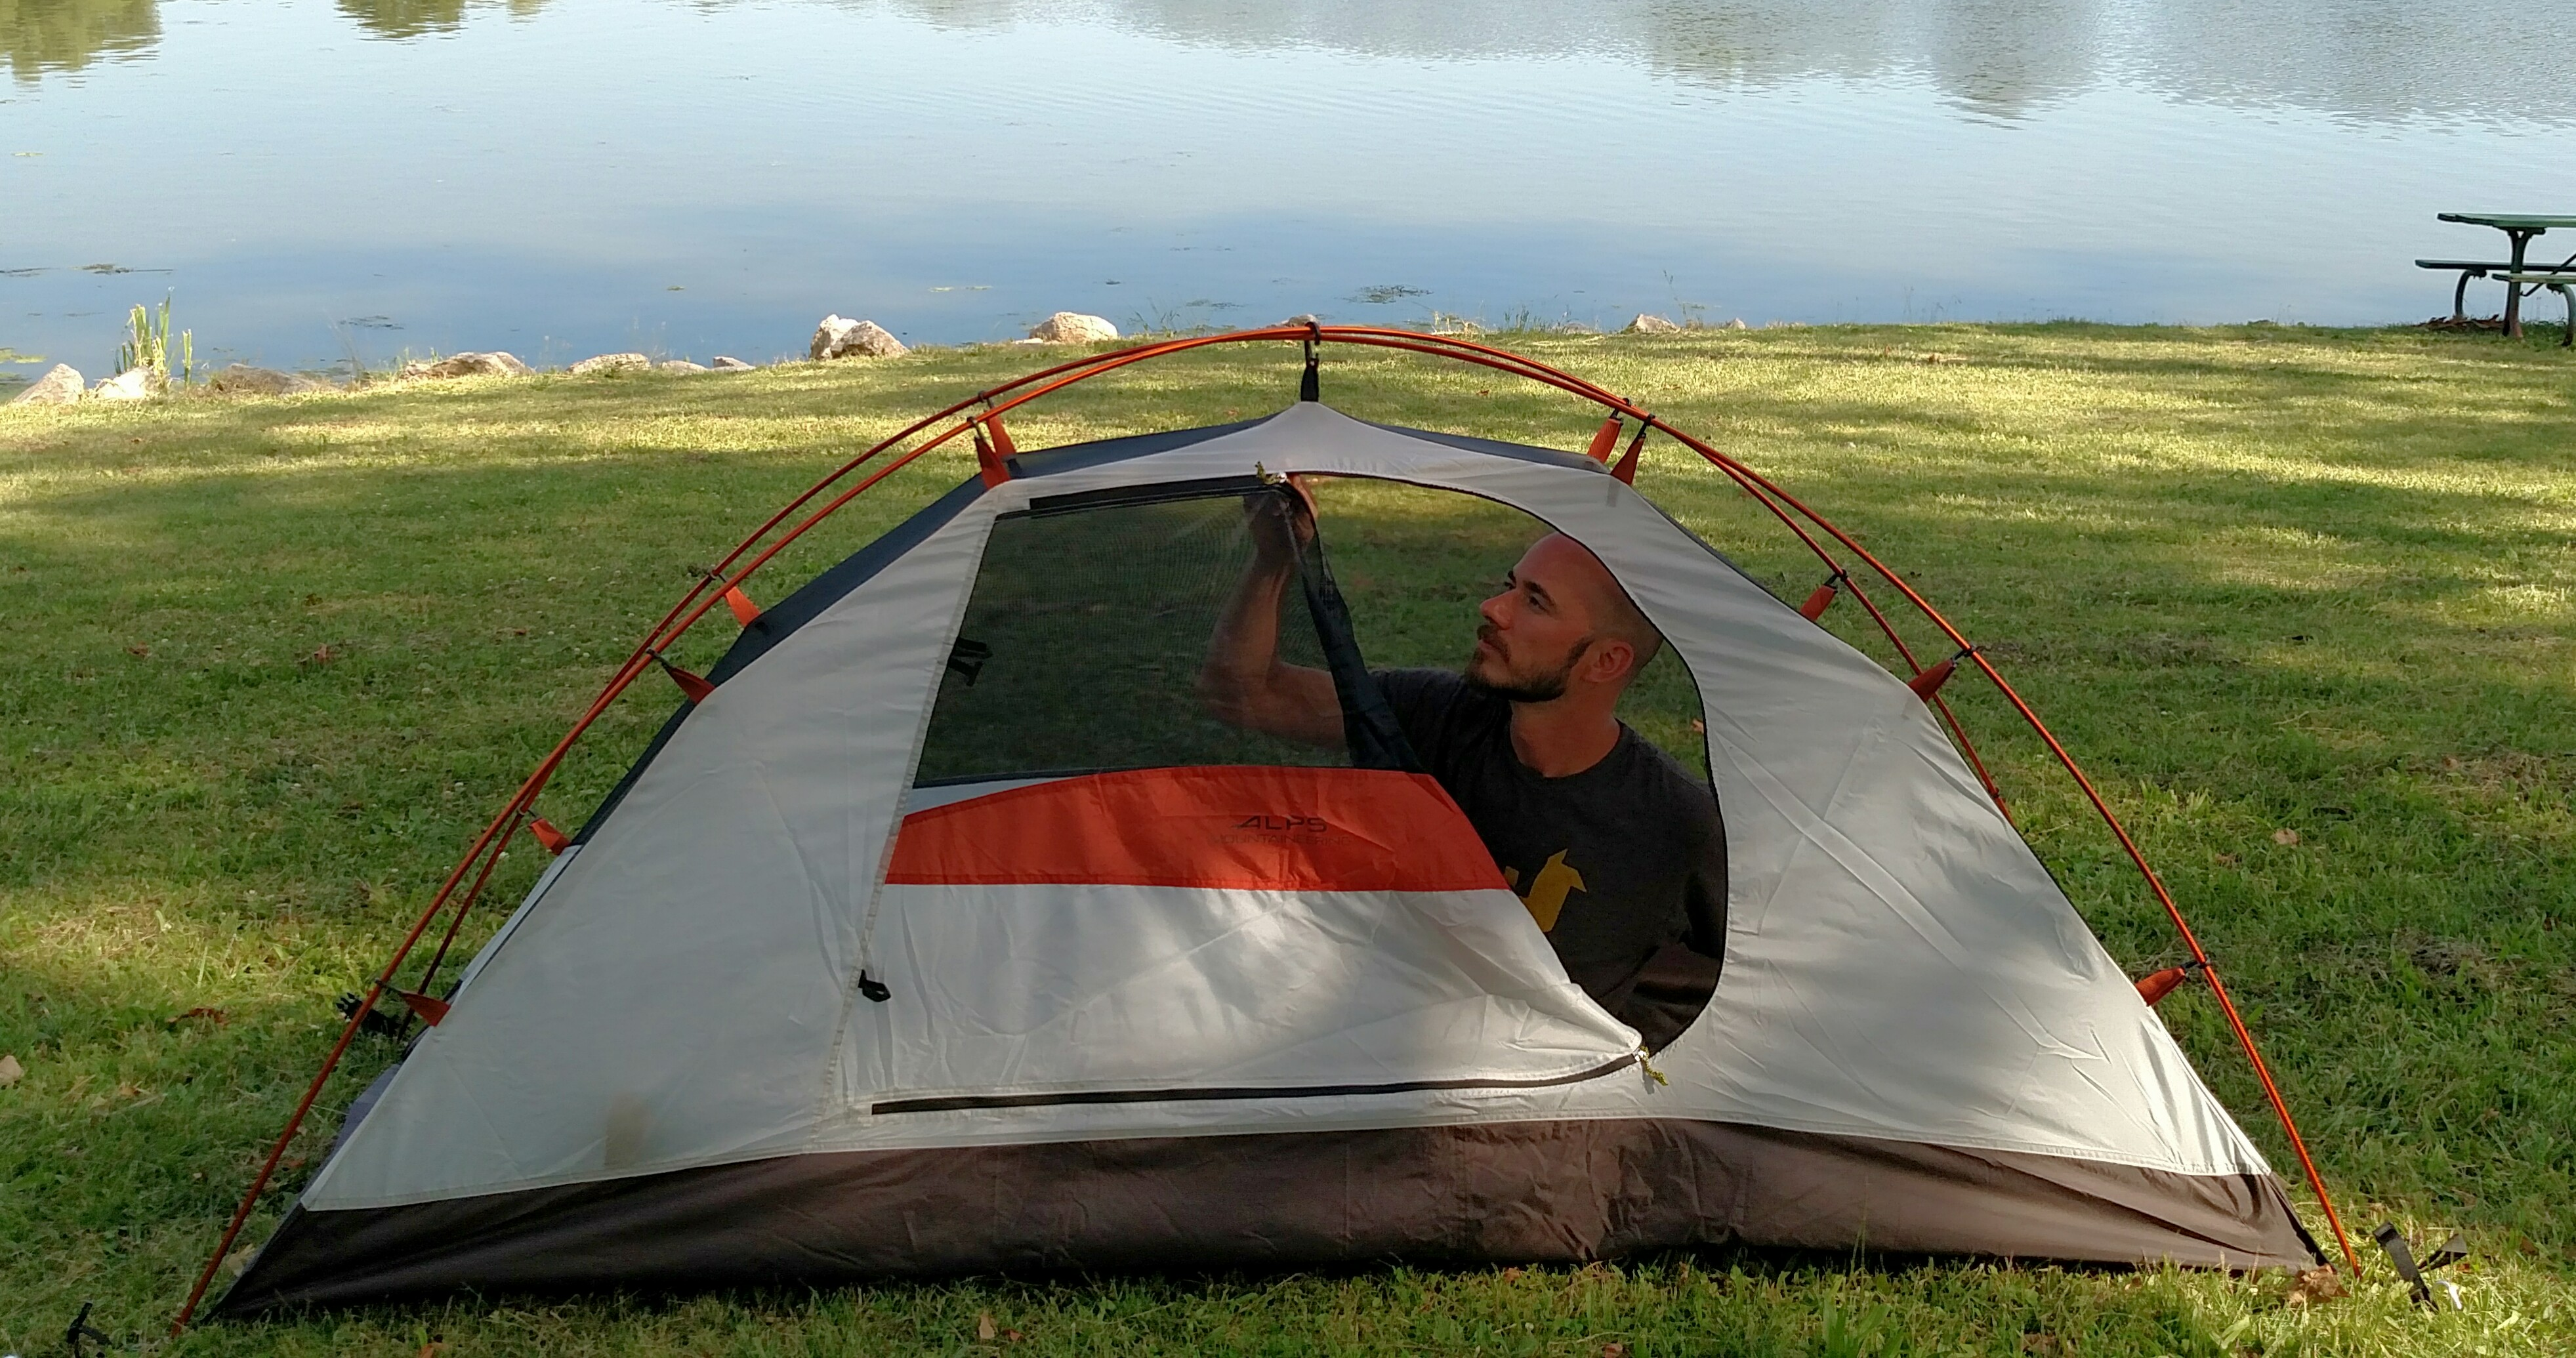 Alps Mountaineering Lynx 1 Backpacking Tent for the Great River Trail Trash Trek & Great River Trail Trash Trek: All Geared Up!